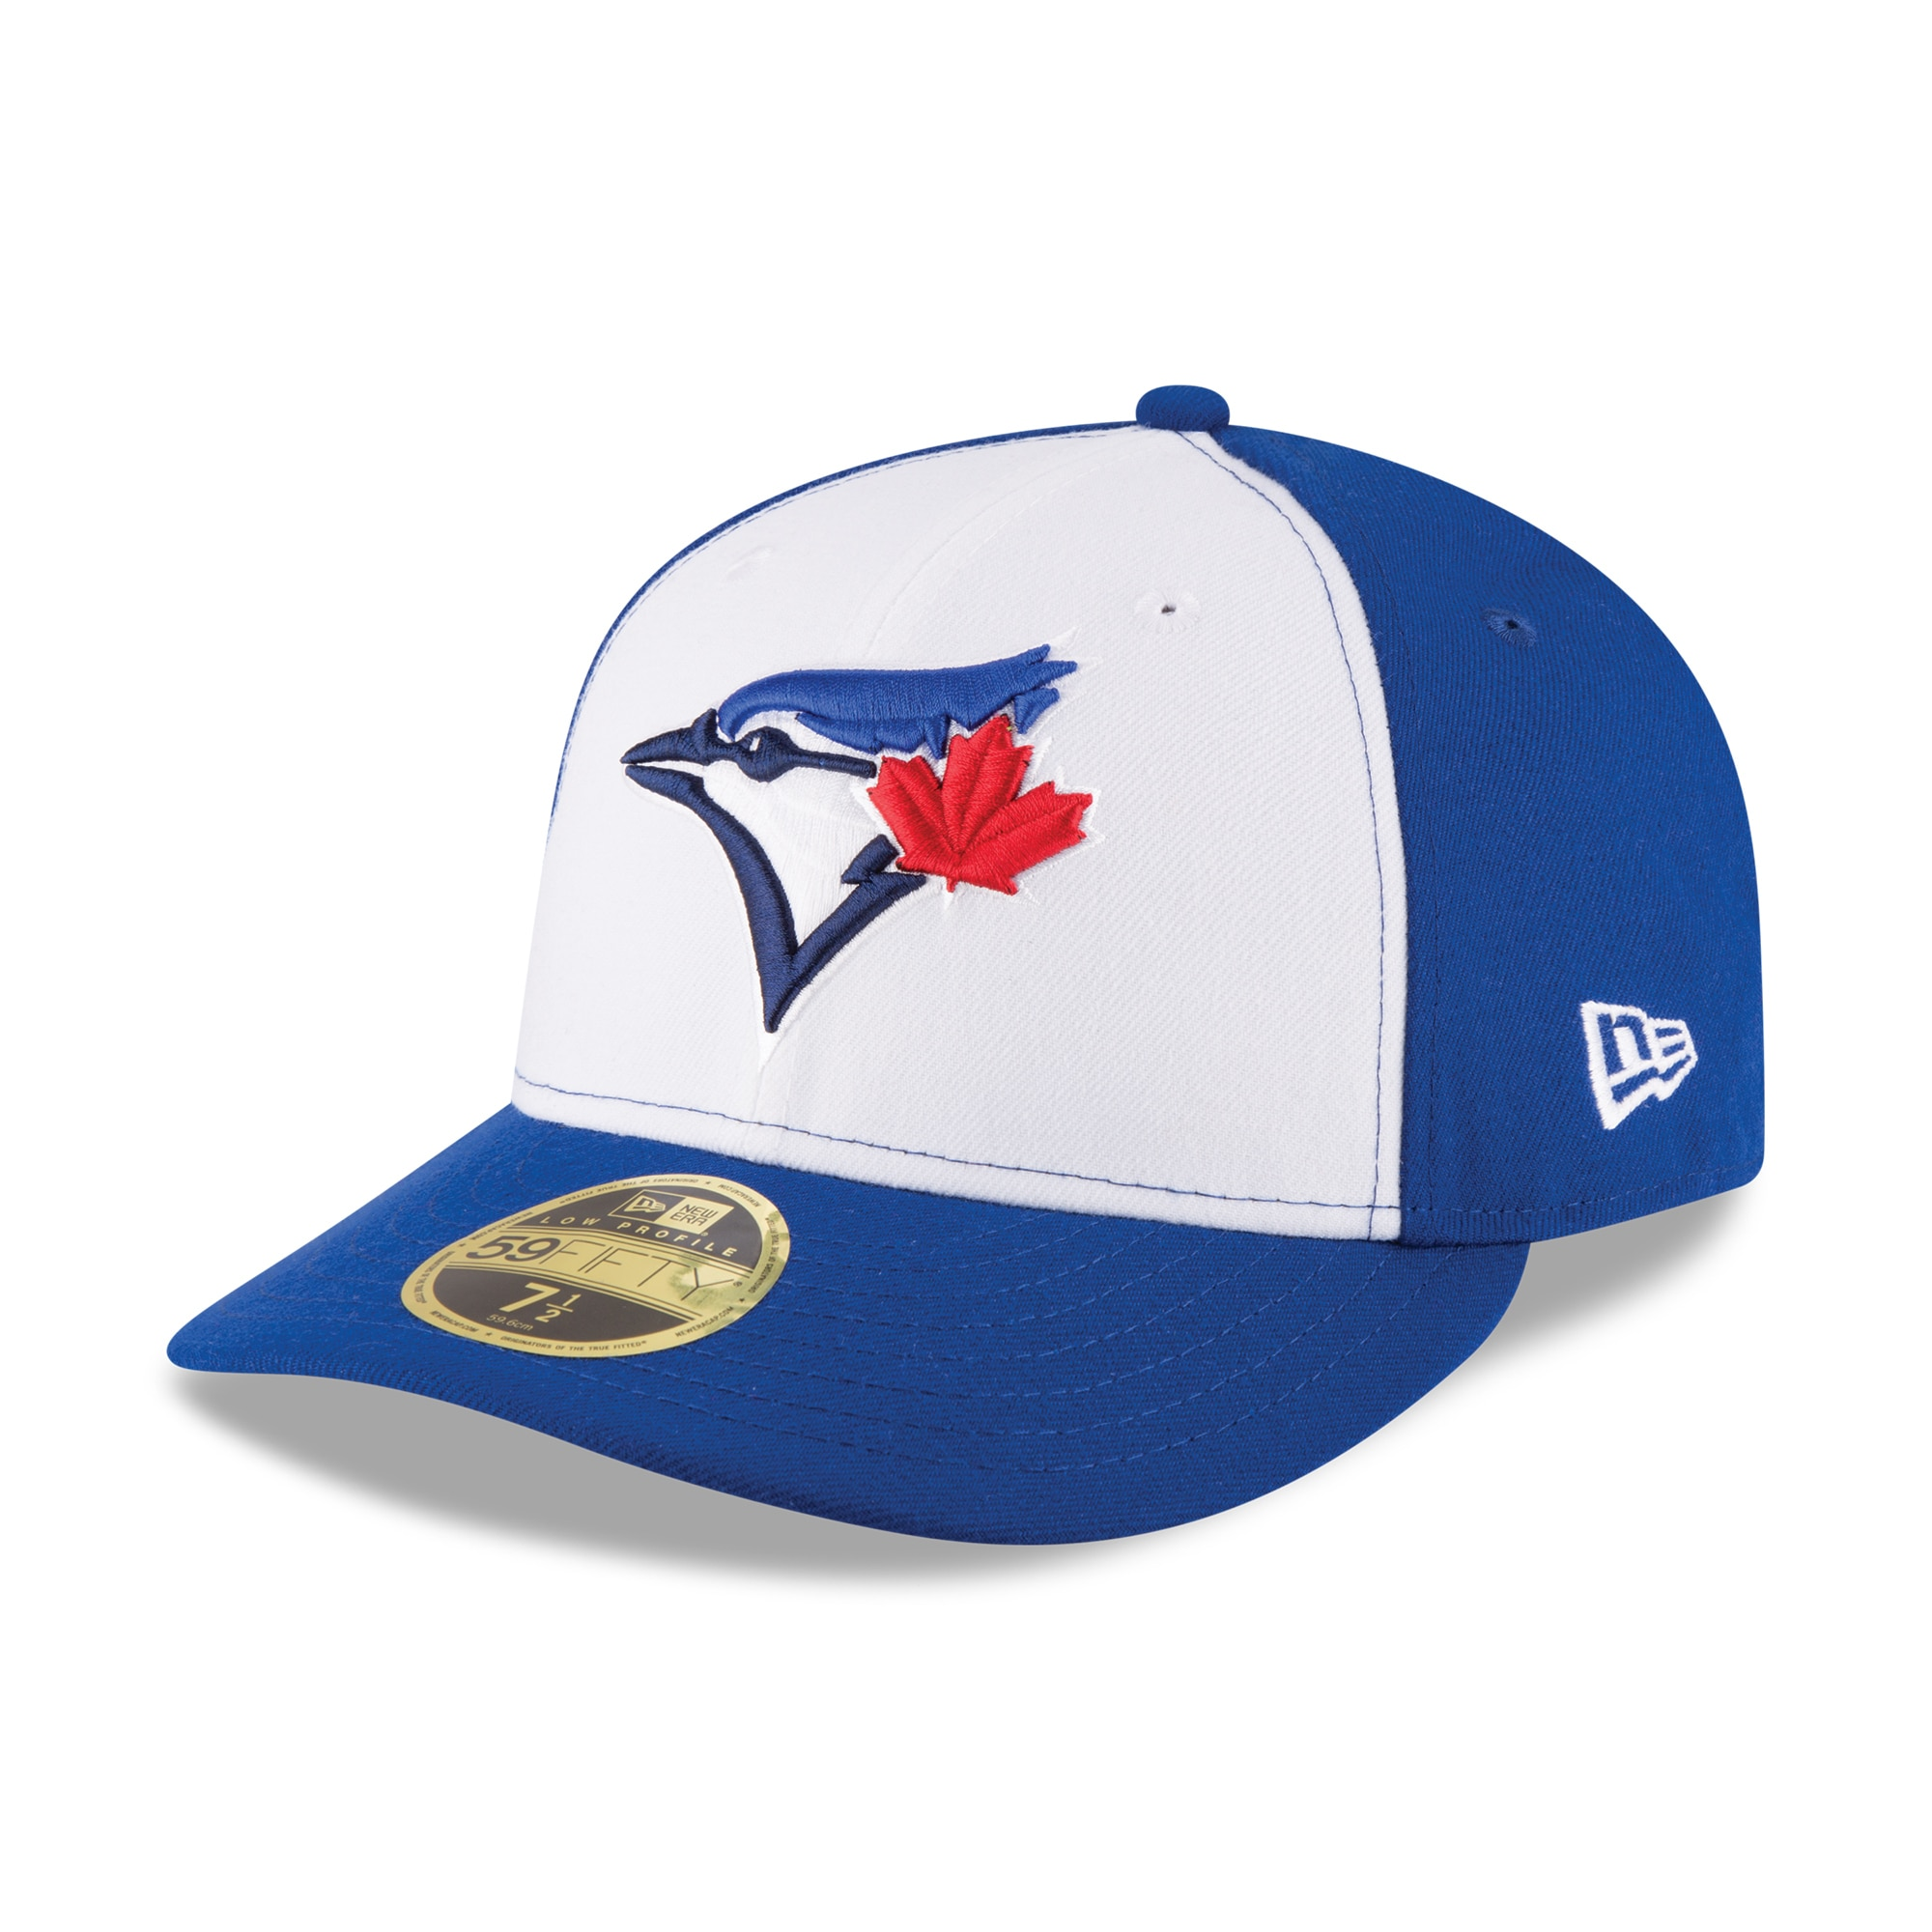 Toronto Blue Jays New Era 2017 Authentic Collection On-Field Low Profile 59FIFTY Fitted Hat - White/Royal